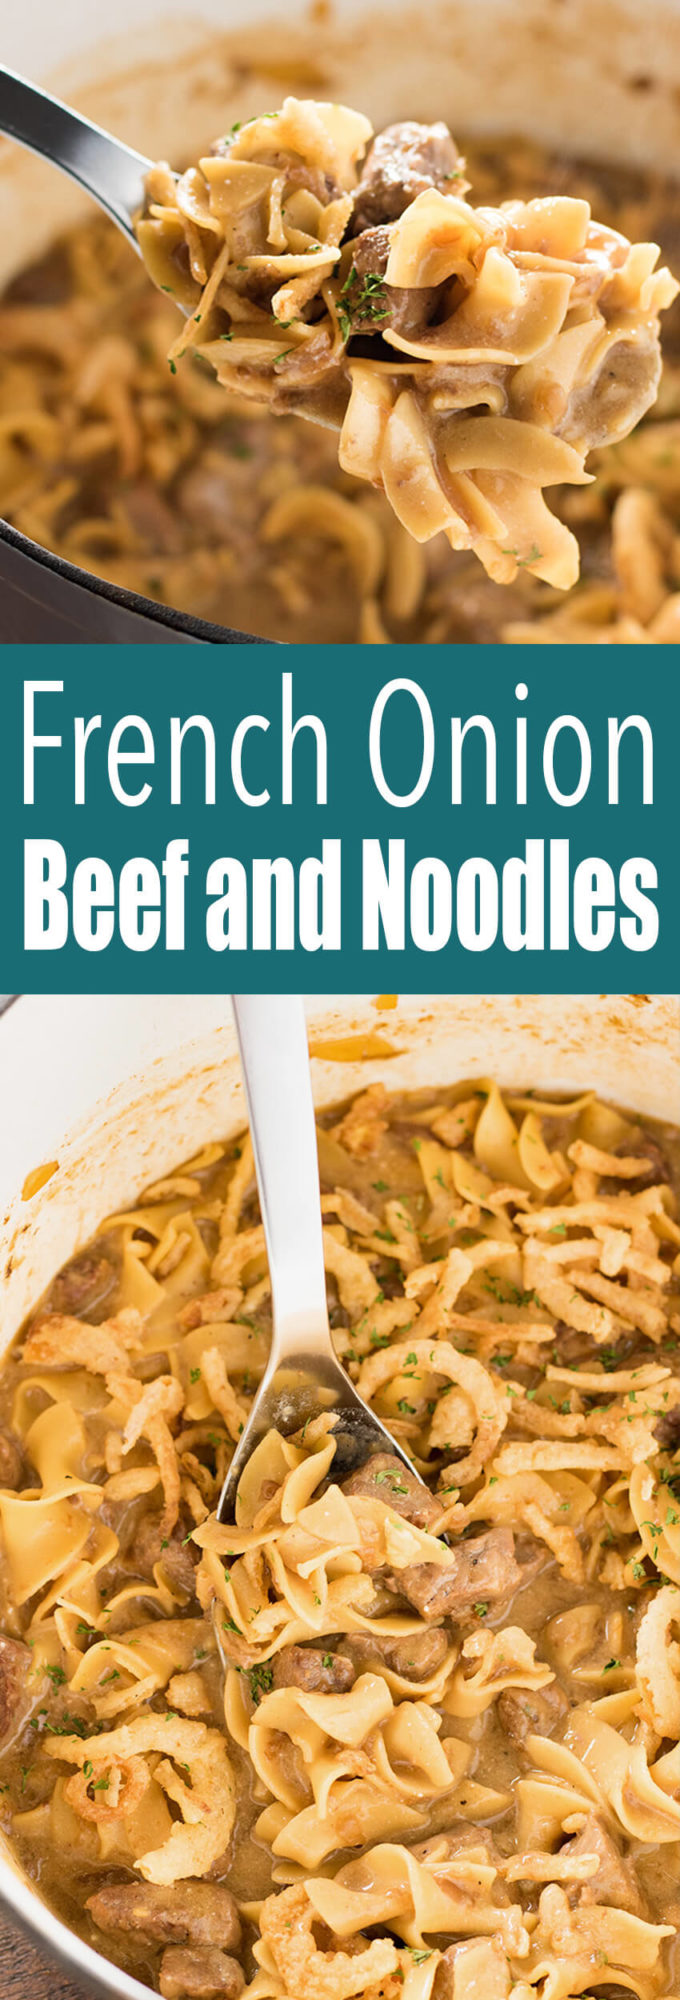 French Onion Beef and Noodles is a quick and delicious dinner similar to a beef stroganoff